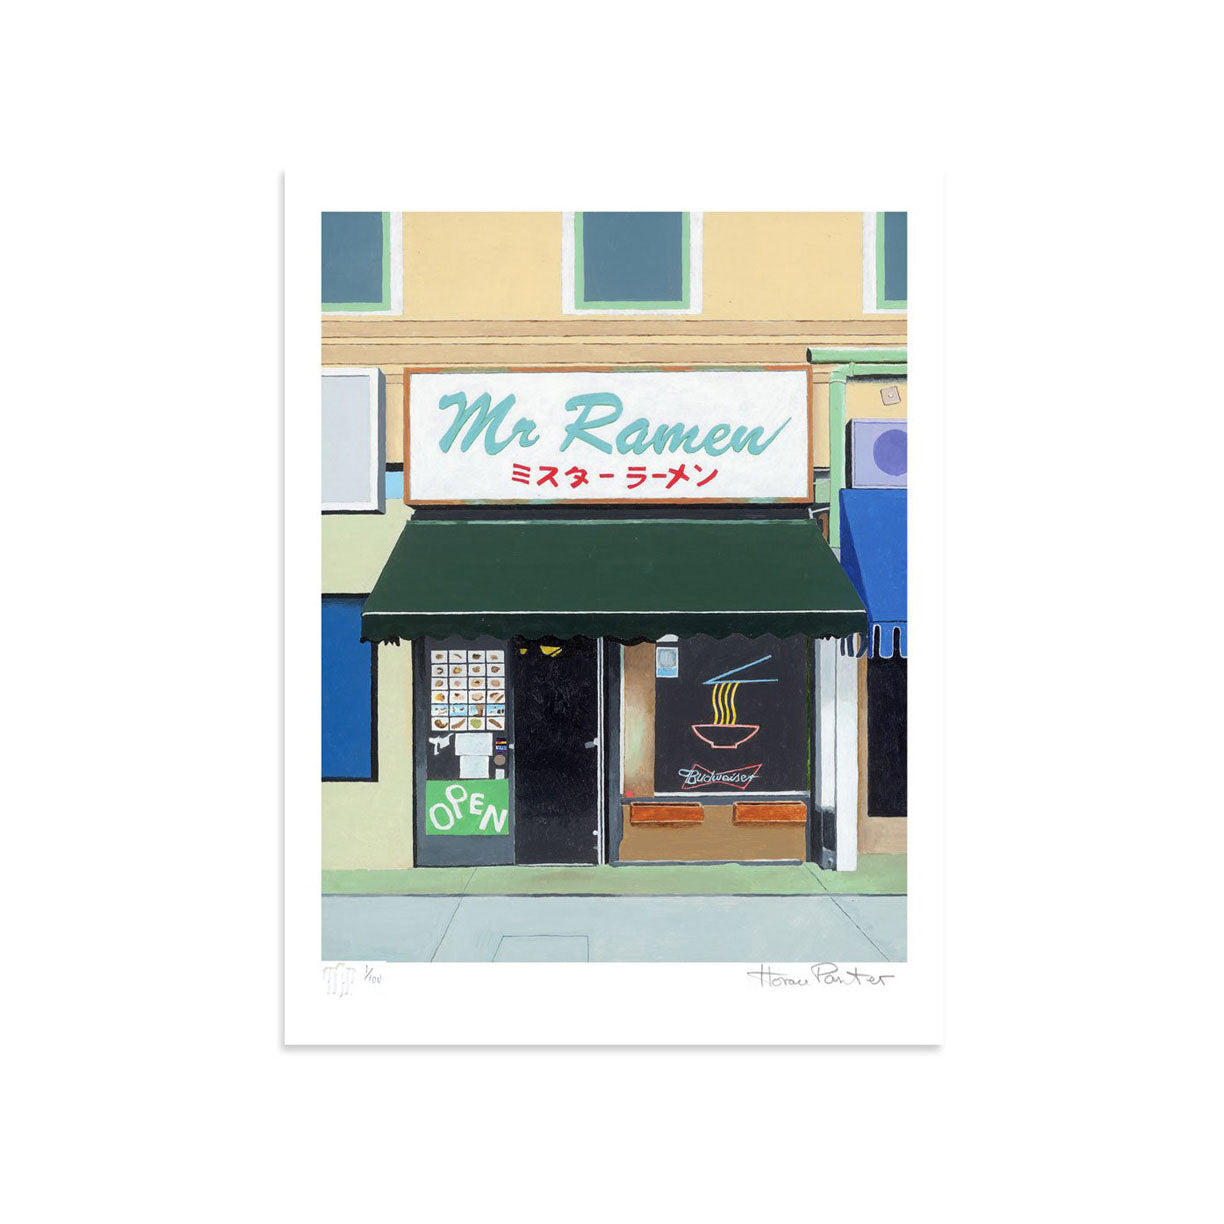 Mr. Ramen by Horace Panter | Print | Poster Child Prints